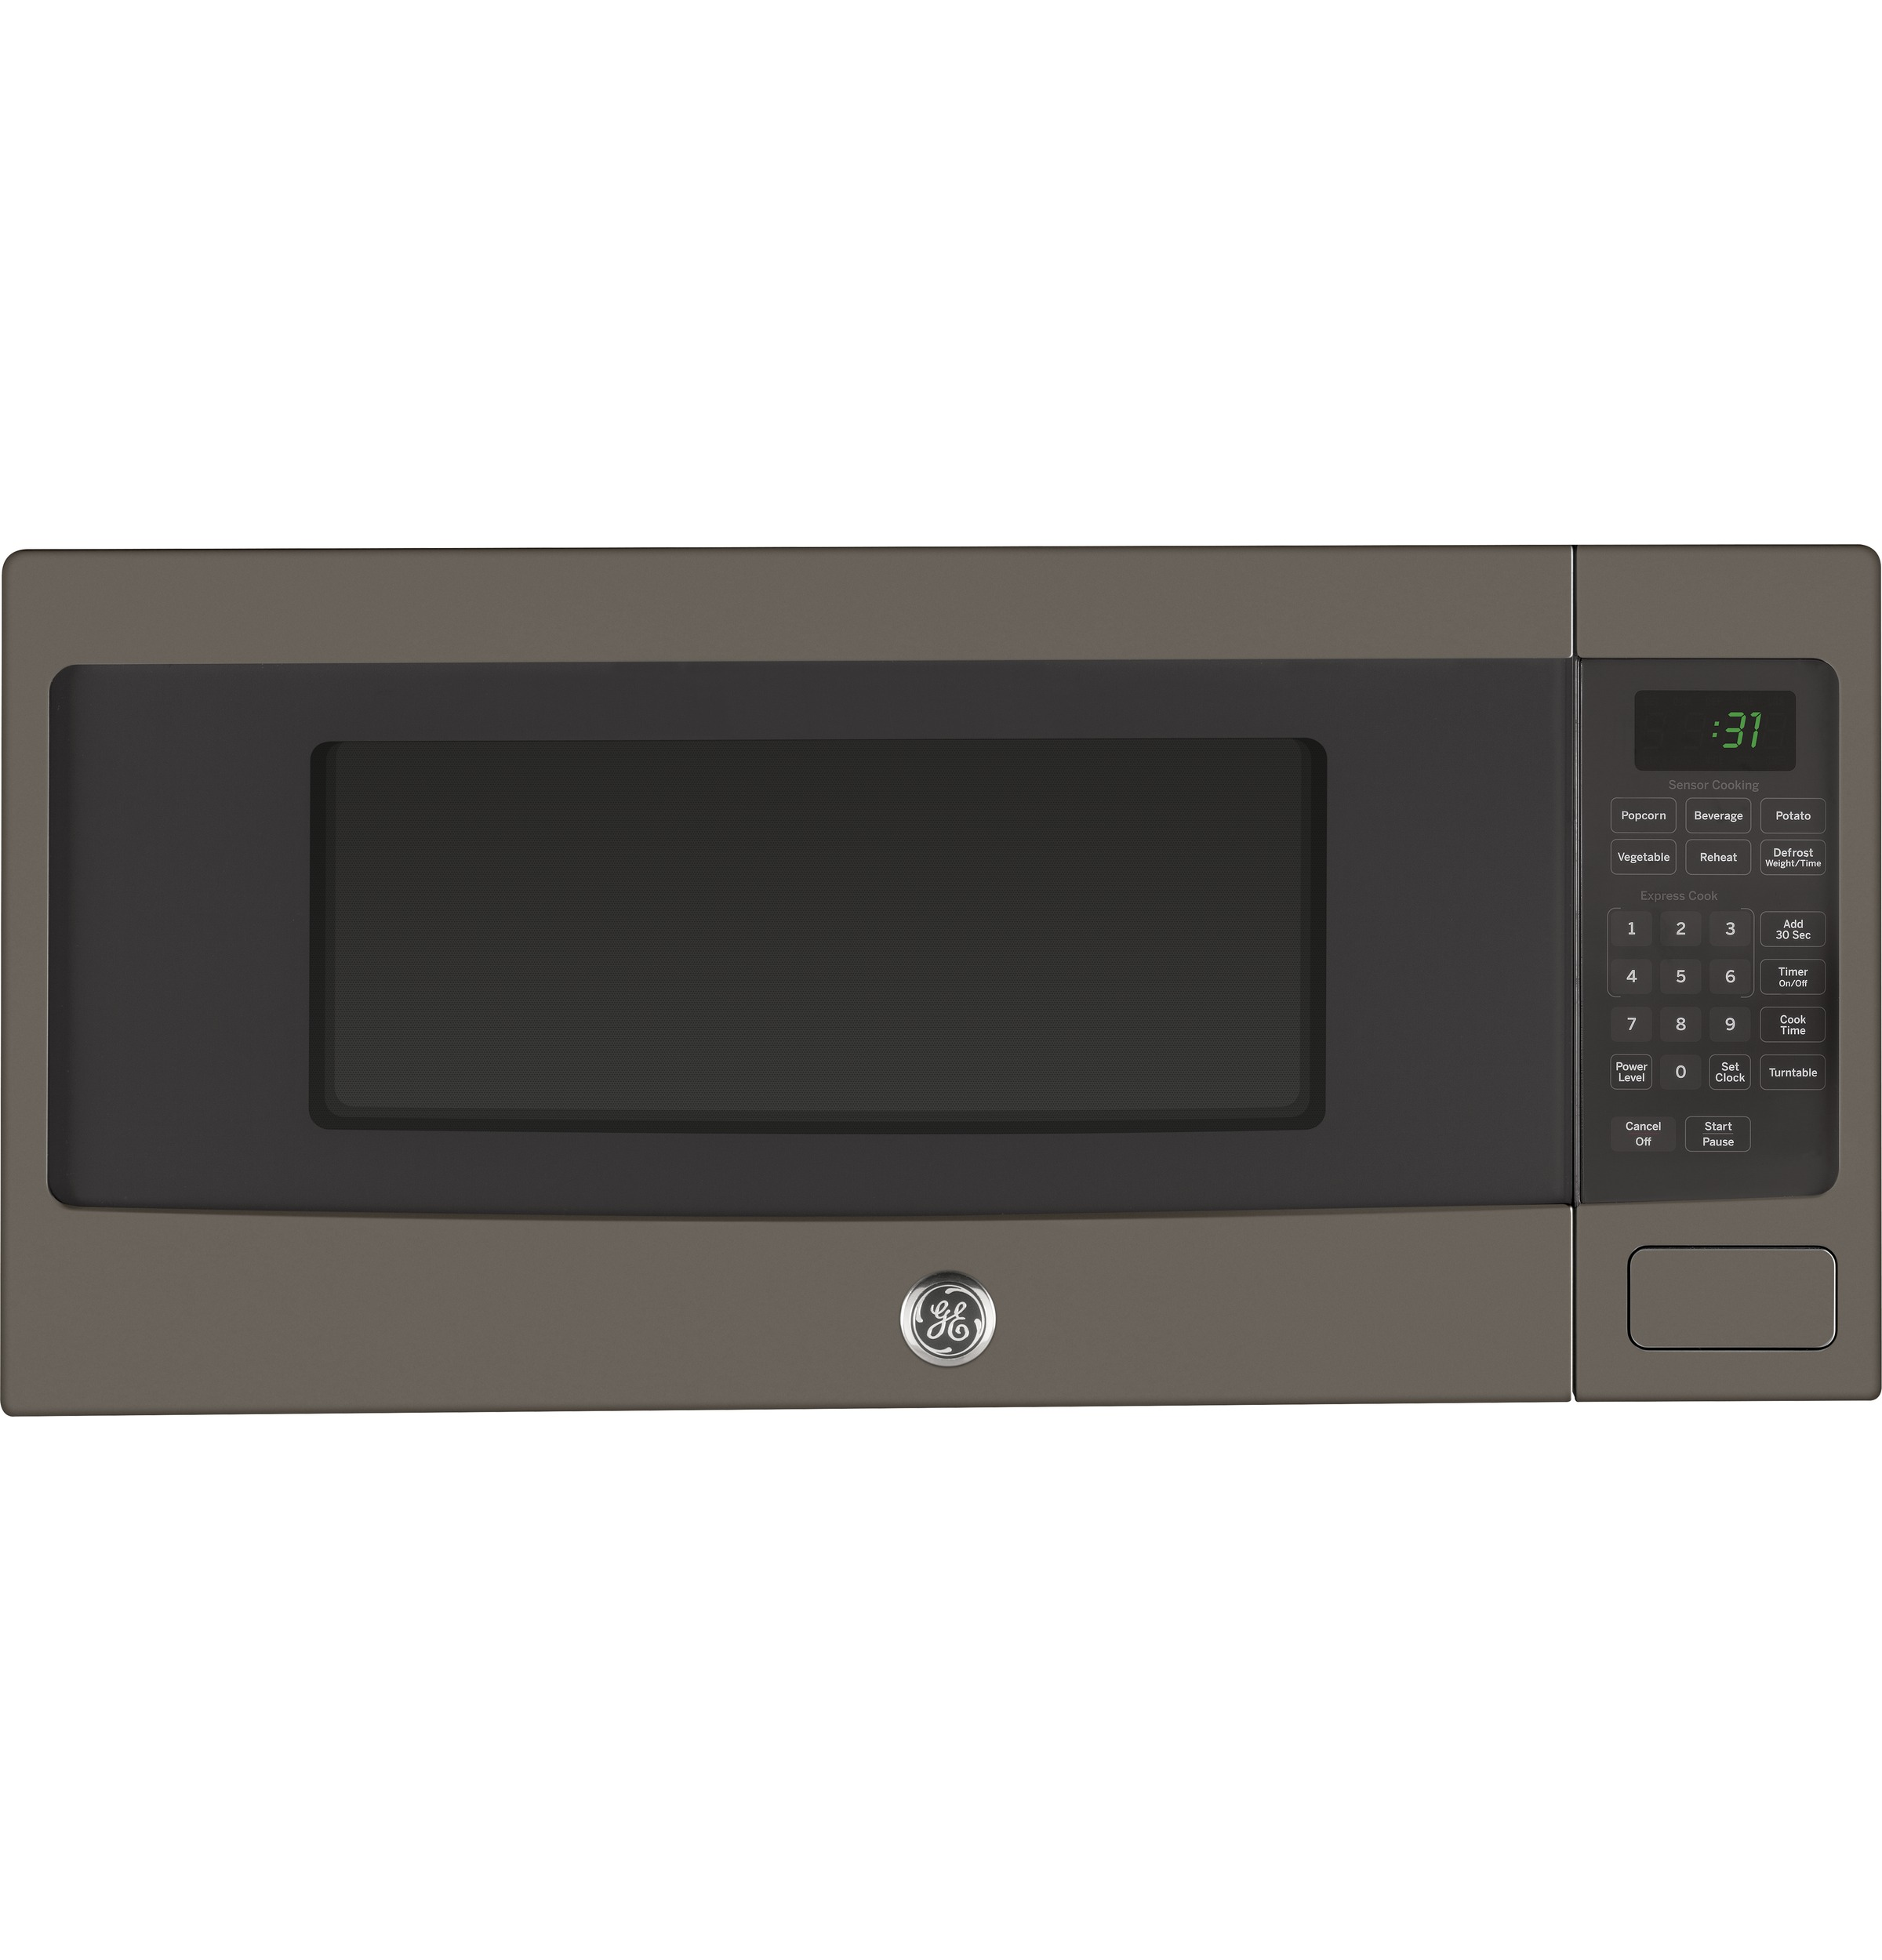 Ge Profile 1 1 Cu Ft Countertop Microwave Oven